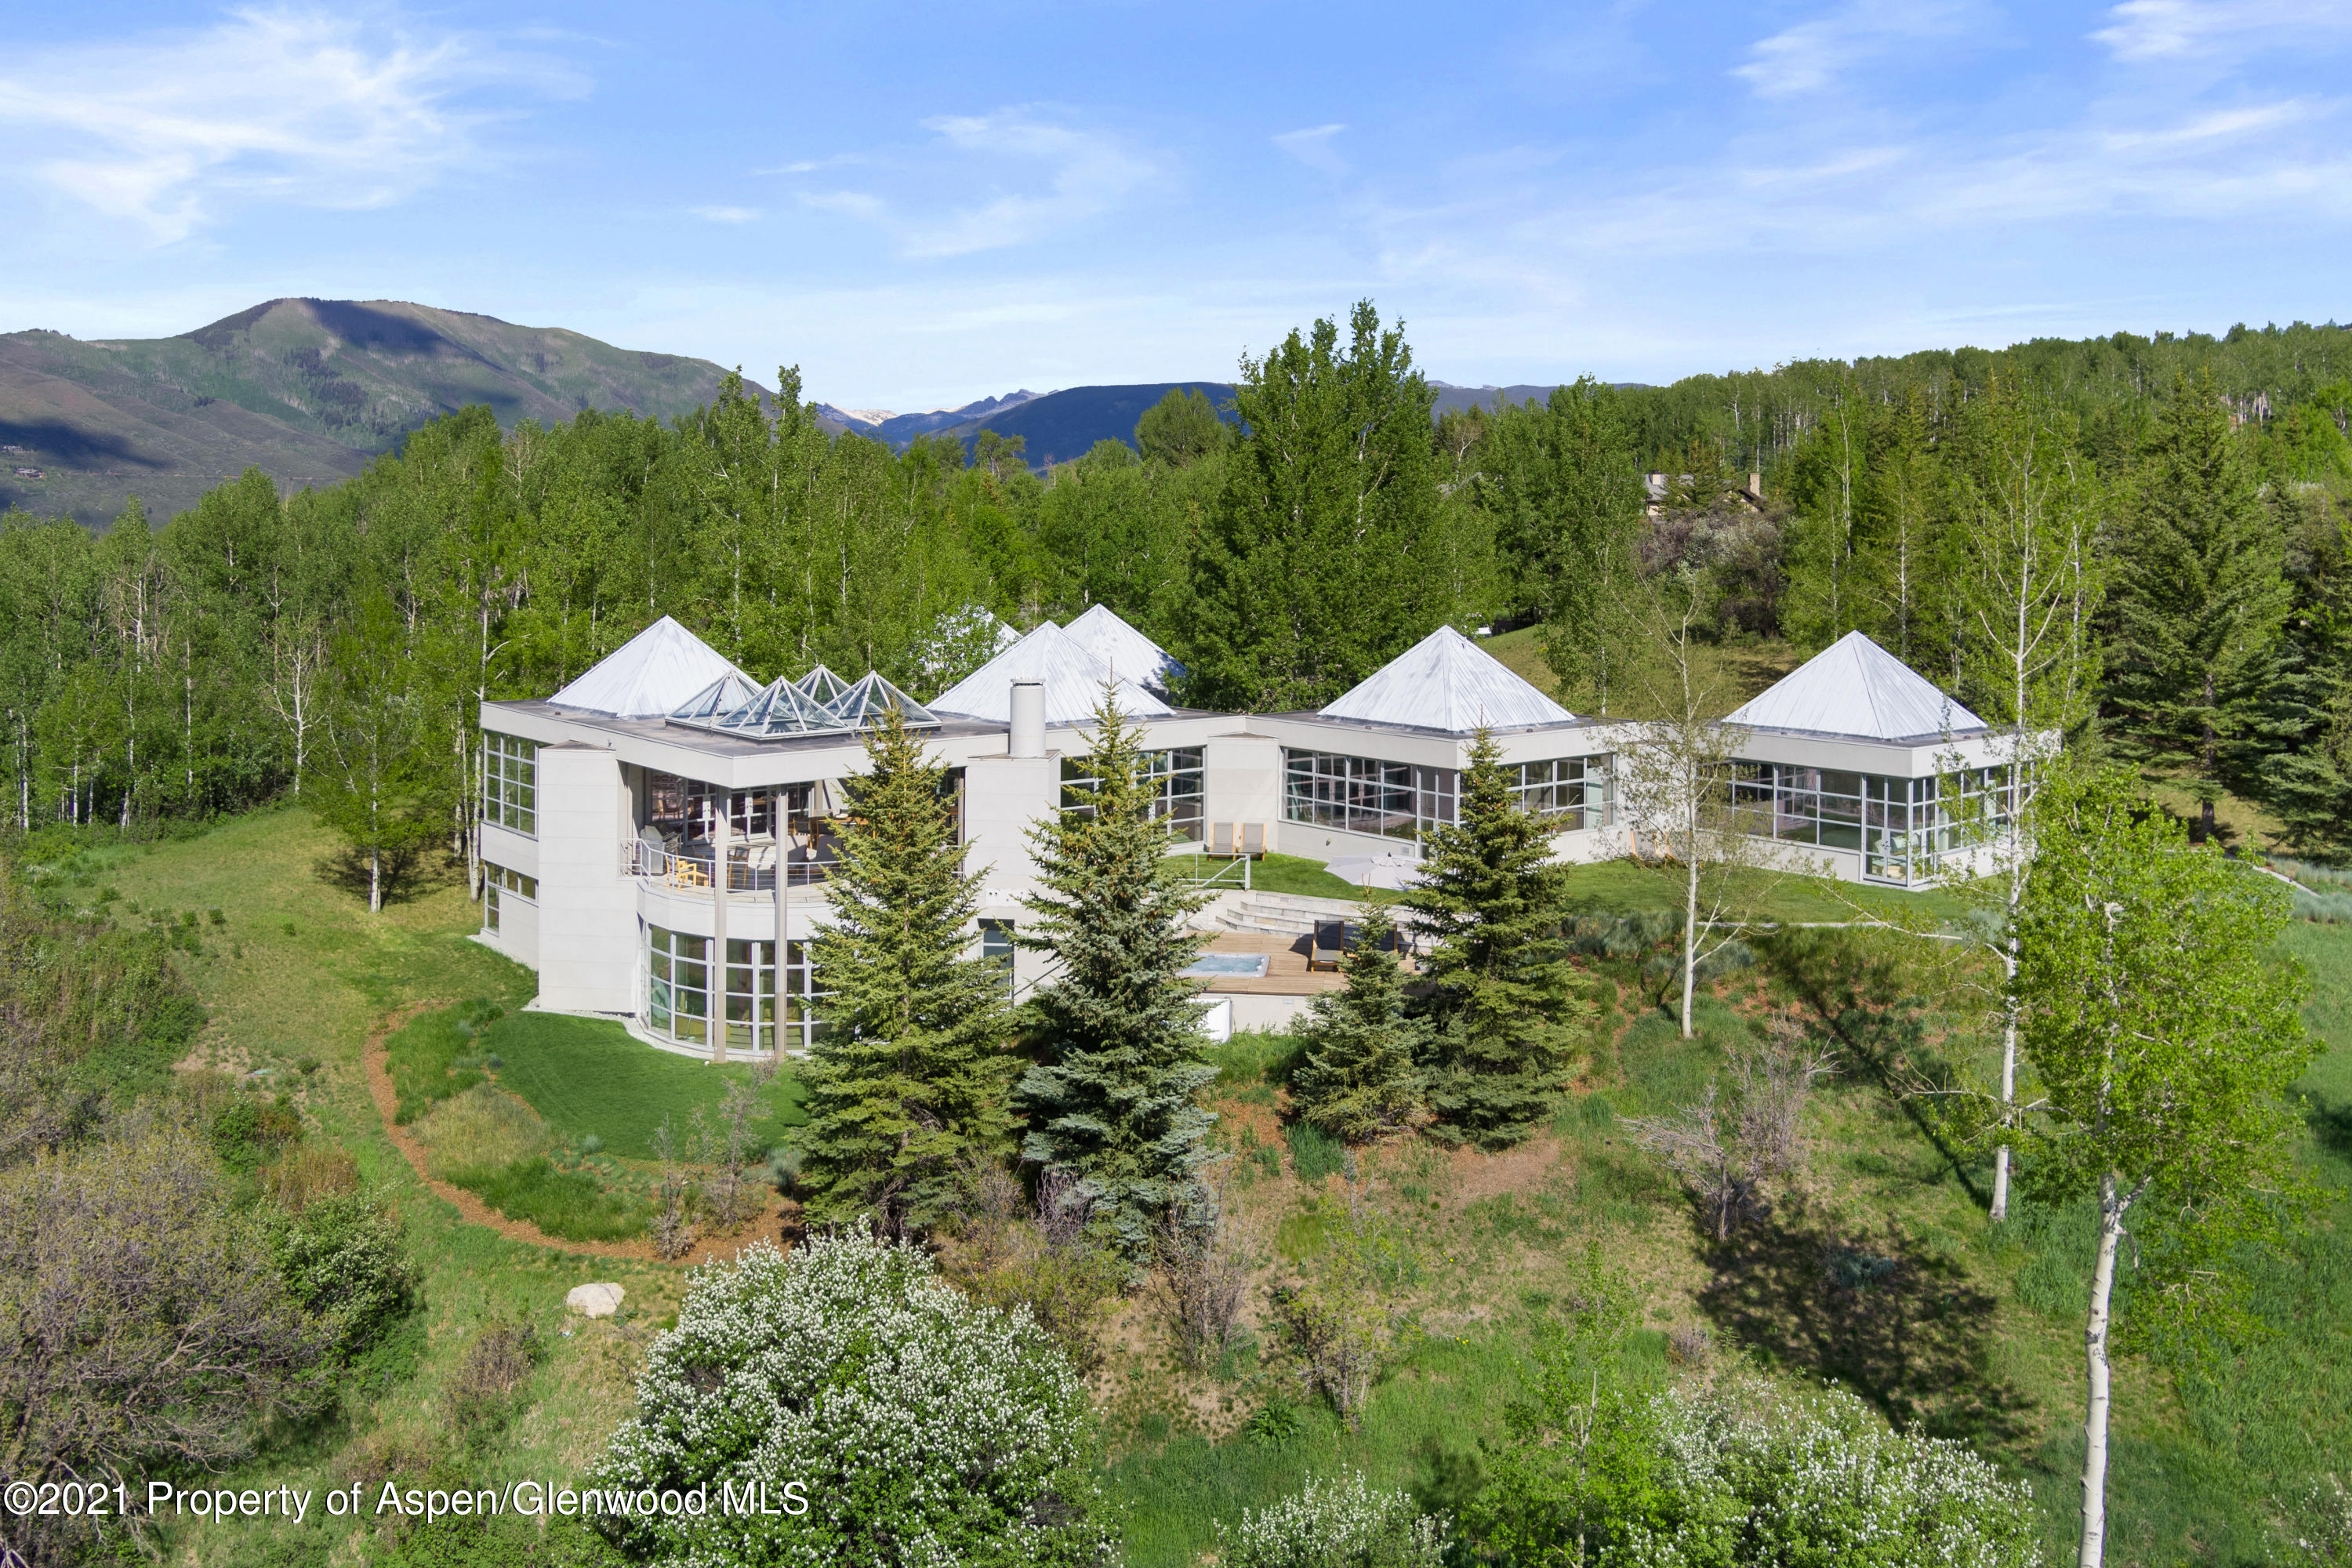 Welcome to a home like no other: a compelling 7,300+ sq. ft. estate among the green rolling hills in the Owl Creek Valley. Sited on a premium 4 acre lot, every room in the home is designed to showcase the 360 degree views of the surrounding mountains and ski slopes. Entertain in several outdoor spaces this summer on the covered deck, patio or lush green lawns. Designed by visionary and acclaimed architect Steve Haas, the modern geometric architecture is an innovative use of steel, glass and space. Custom-designed furnishings complement every room. With several dynamic living areas, a game room and four en-suite bedrooms, there is abundant space to host guests, while enjoying a sophisticated main floor master suite and den. All 4 Aspen and Snowmass ski areas are just minutes away. This property provides the privacy and splendor of the Colorado outdoors and close proximity to all that Aspen has to offer. The Aspen airport is just 5 minutes away; downtown Aspen is a quick 10 minutes drive into town.